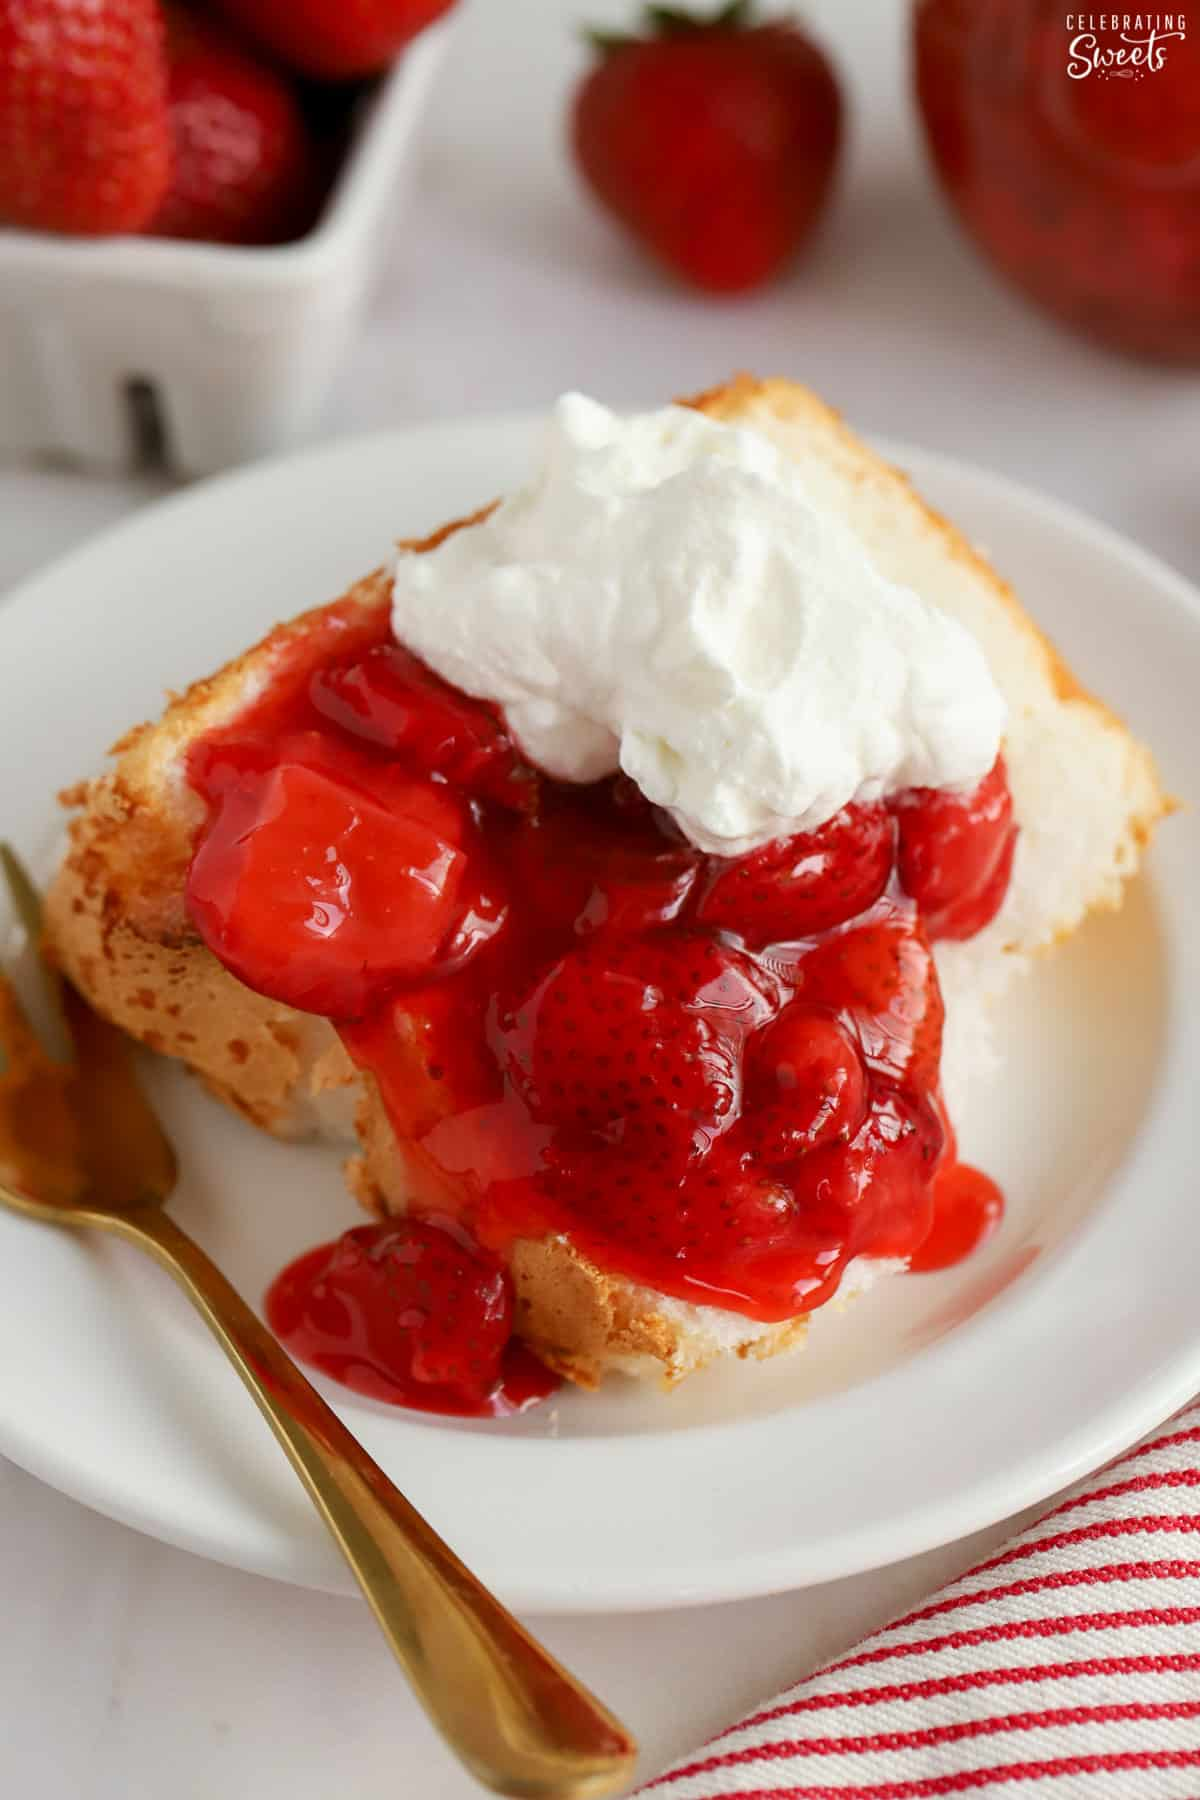 Strawberry sauce and whipped cream on a slice of angel food cake.